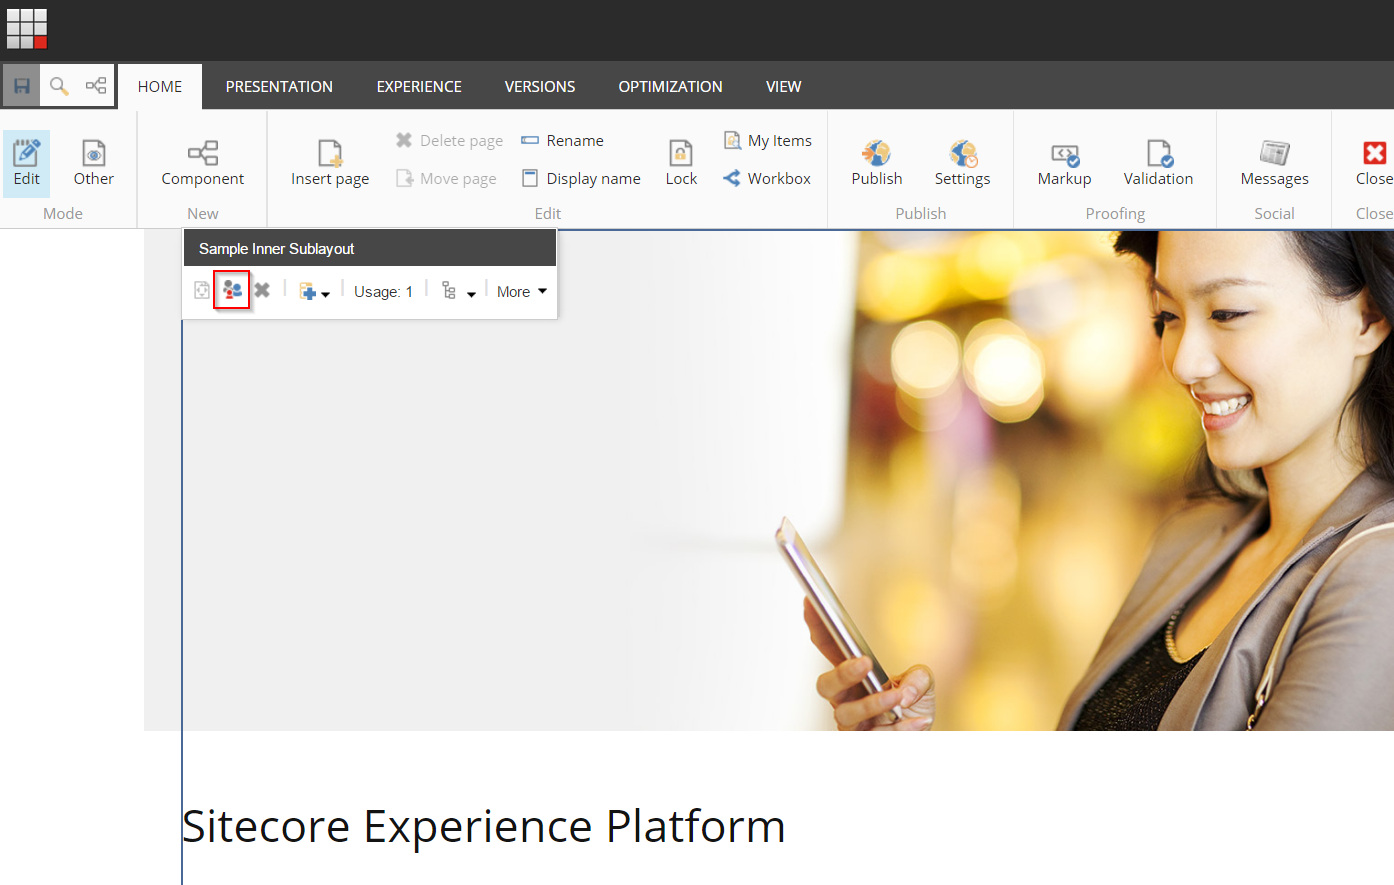 5sitecore.png